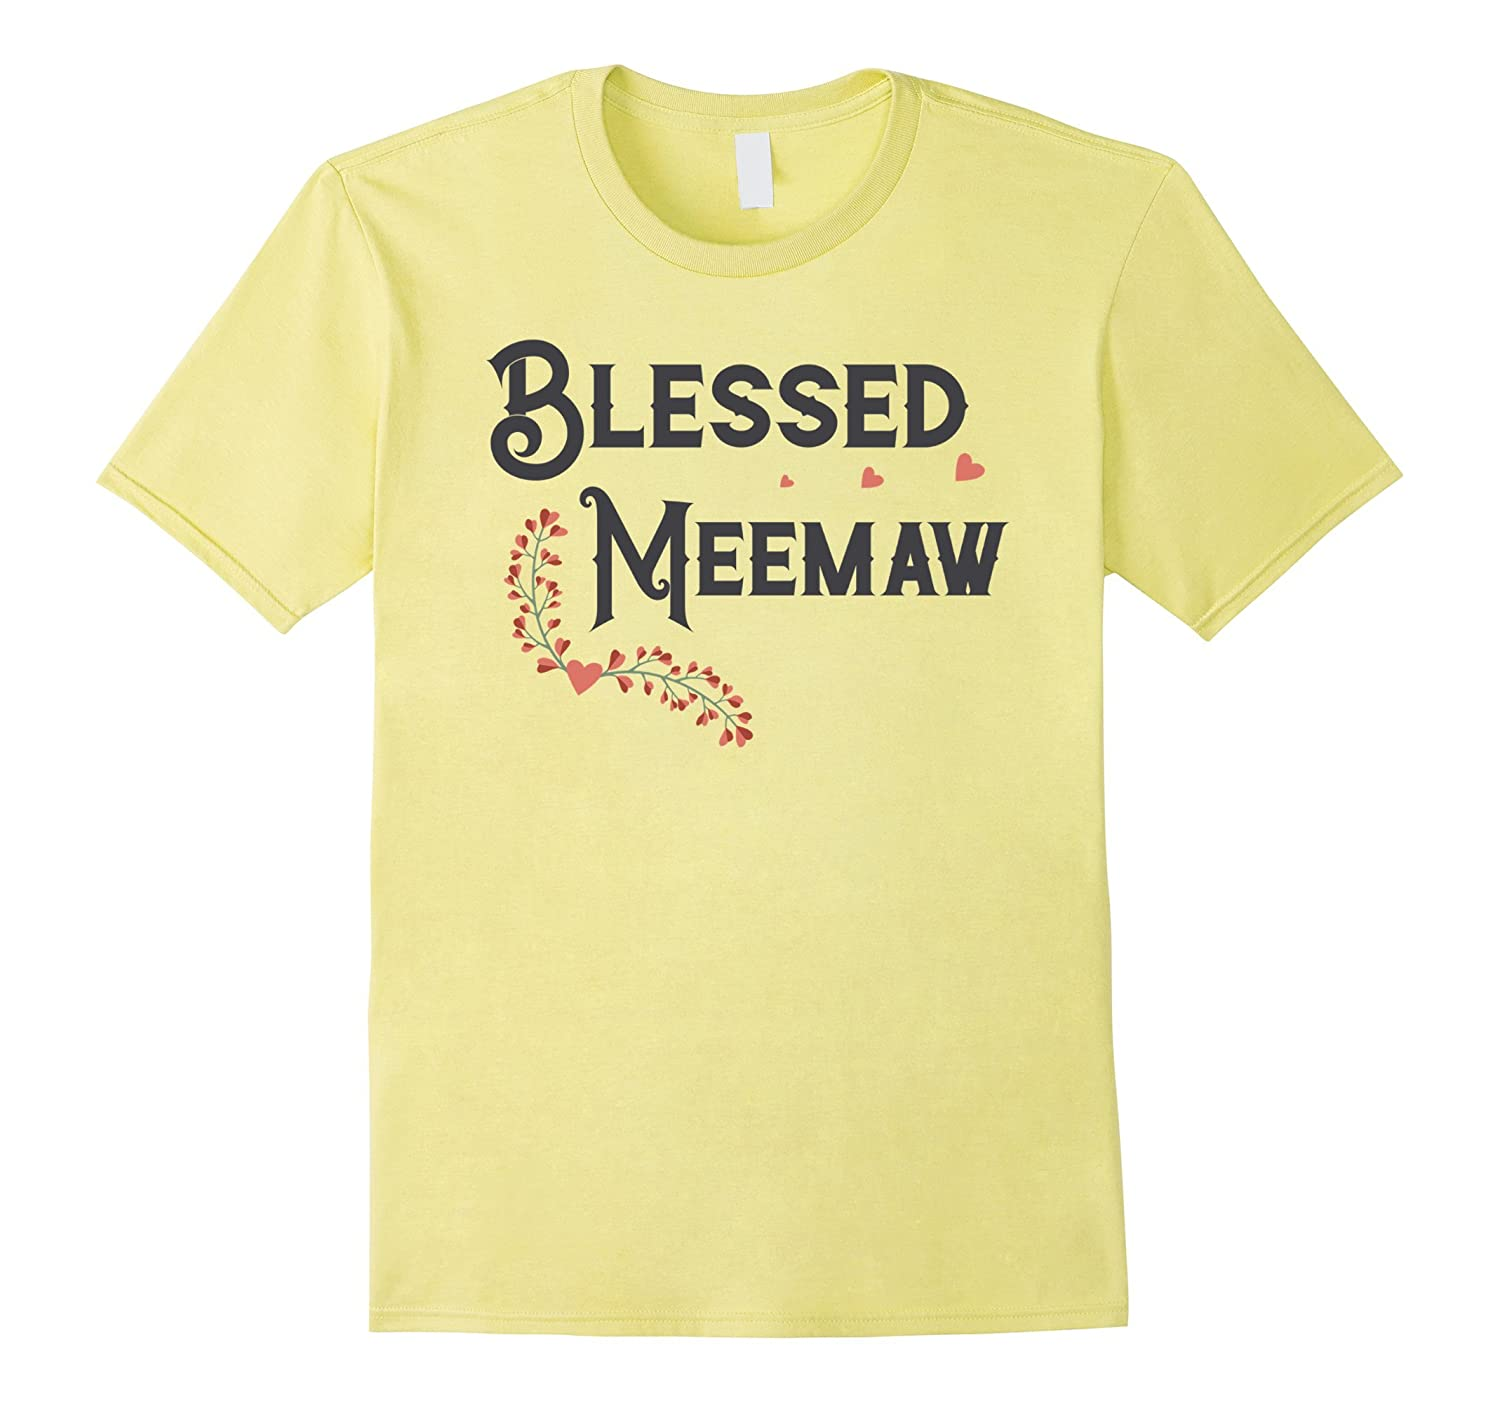 Blessed Meemaw Tee with Hearts and Flowers – Light Shirts